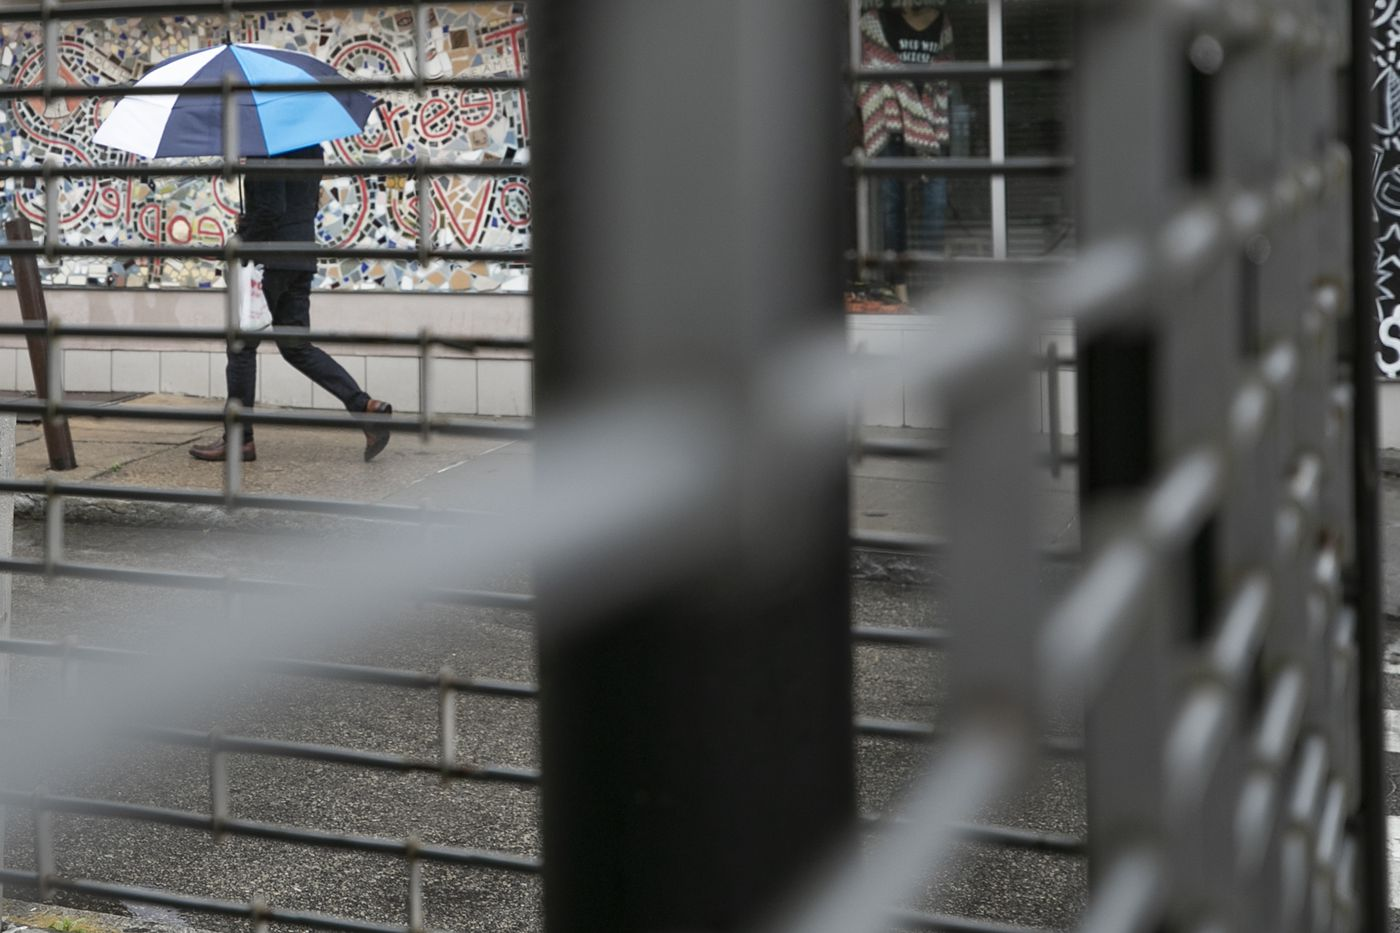 A pedestrian is seen through a closed shop at 5th and South Street on Saturday, March 28, 2020. A stay at home order has been issued in Philadelphia due to the spread of the coronavirus (COVID-19). All nonessential businesses are closed. Restaurants are now takeout or delivery only.